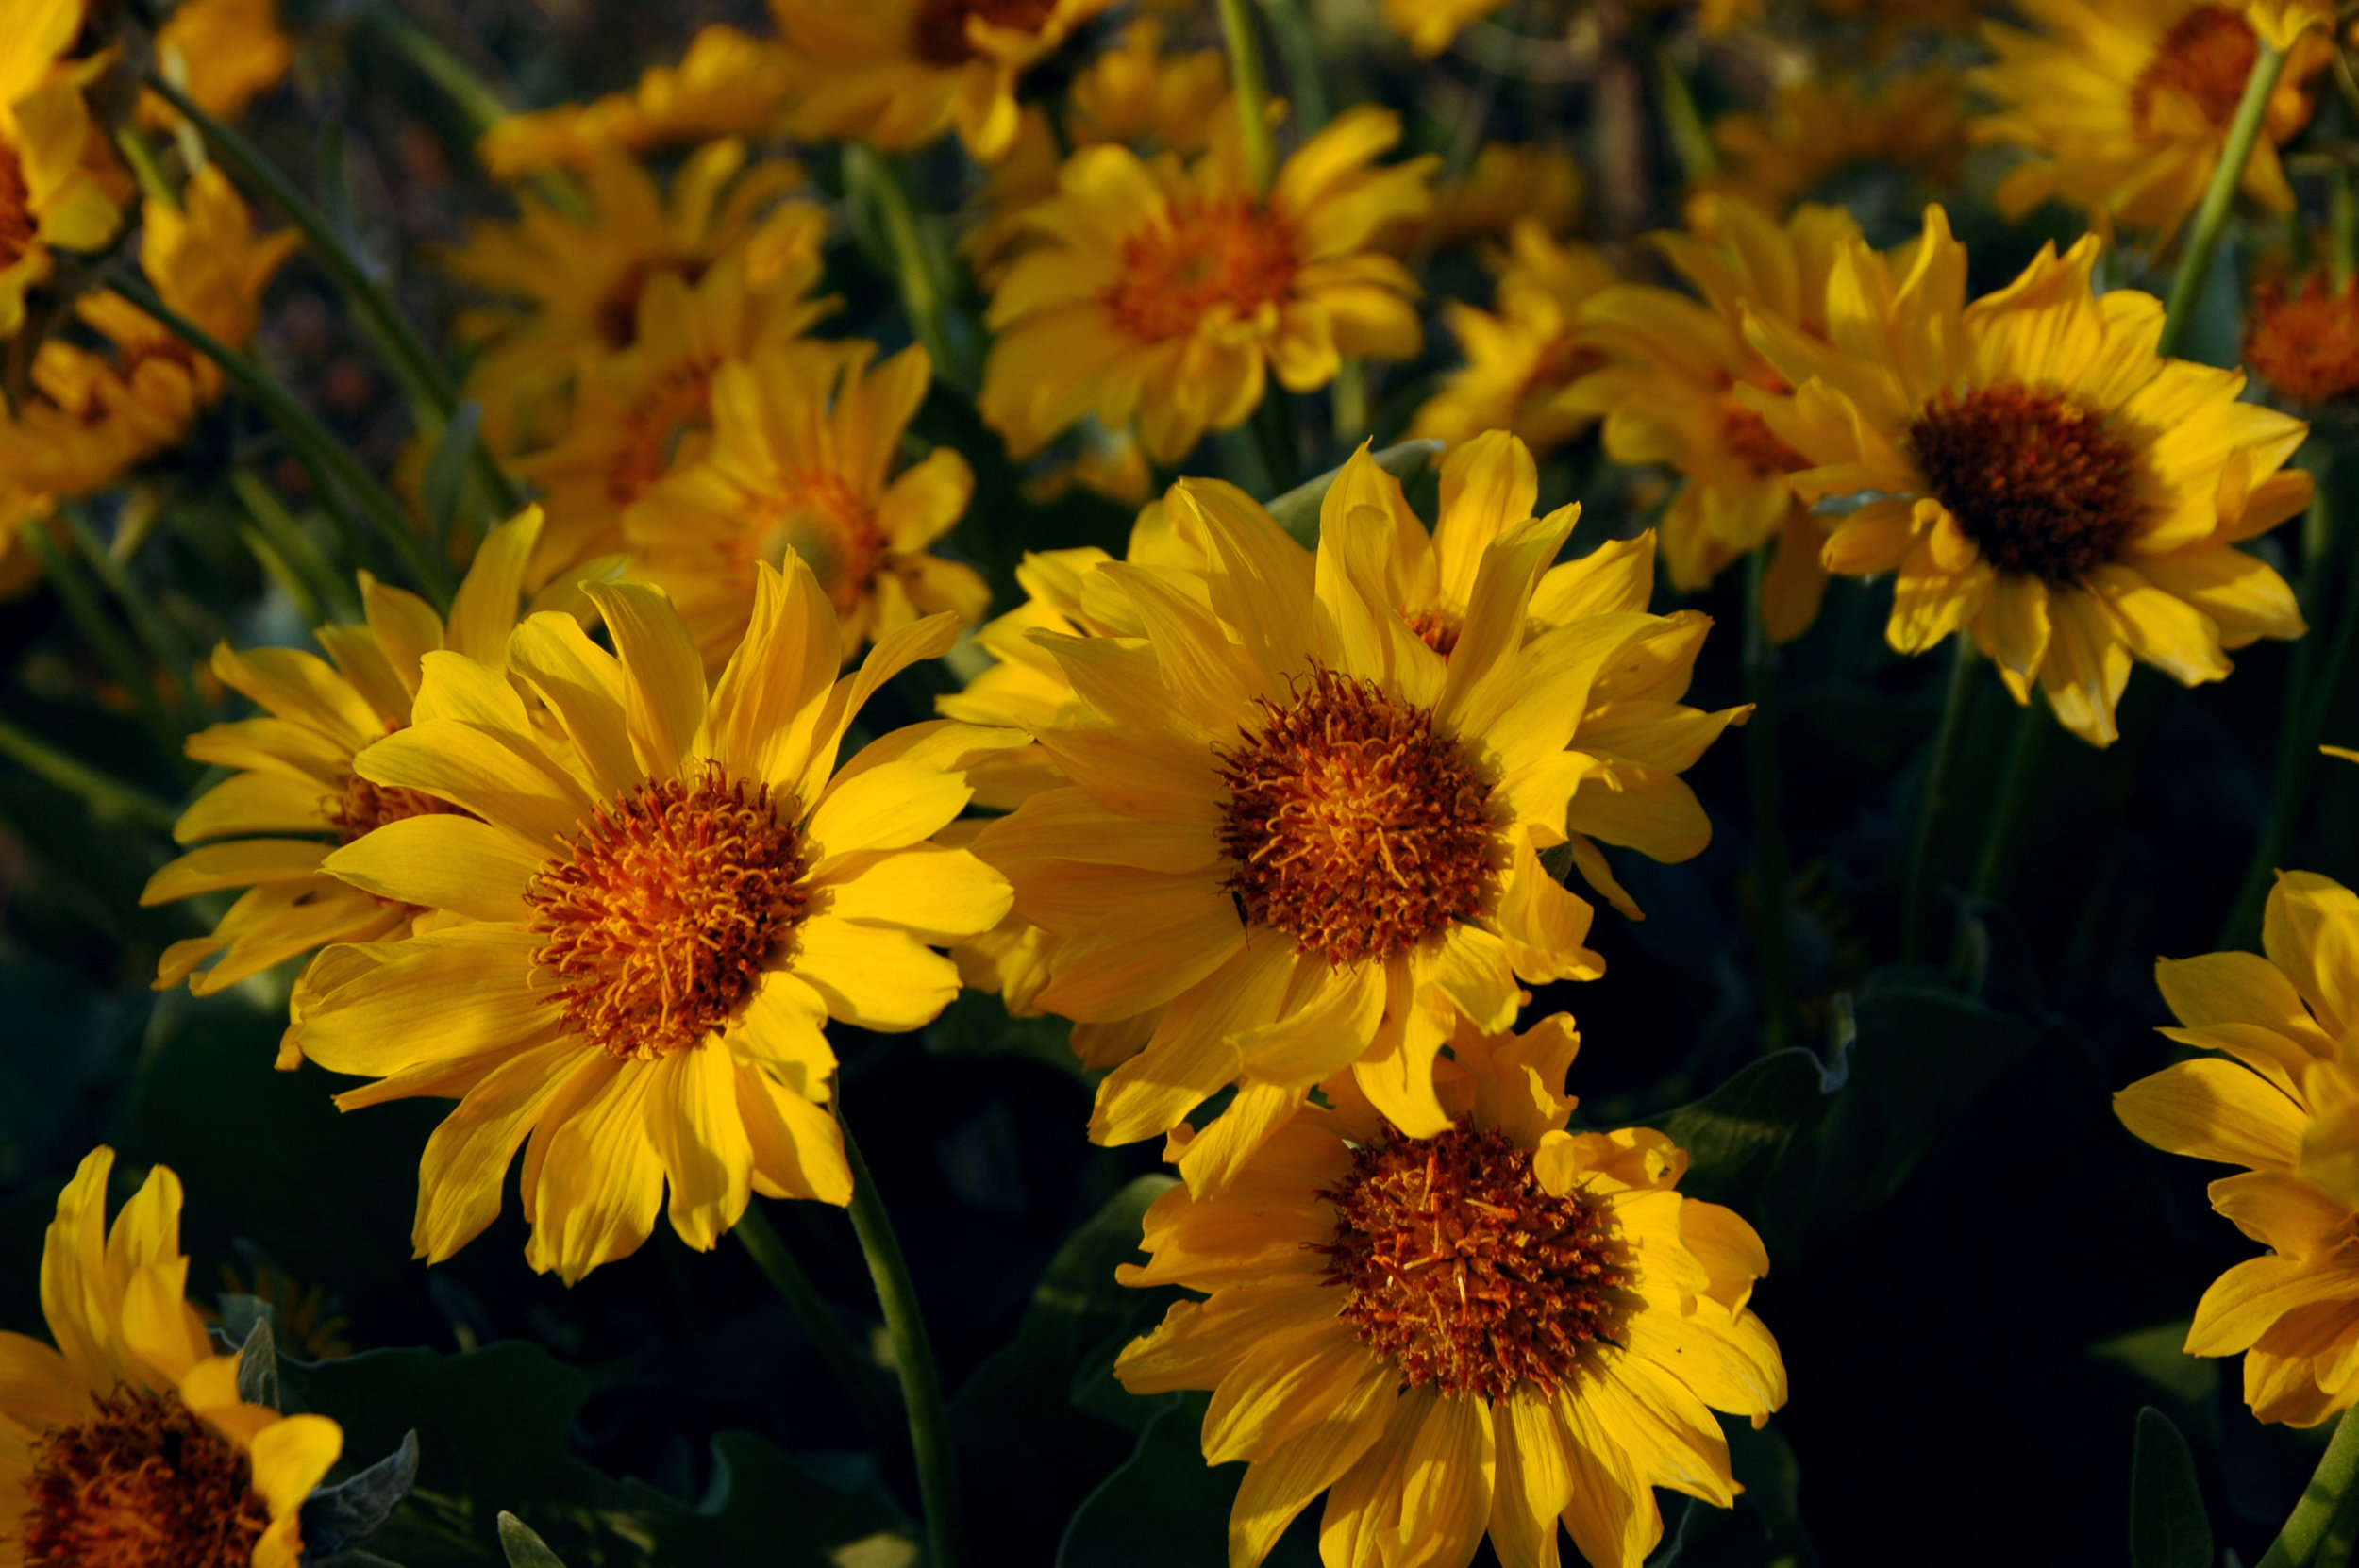 Arrowleaf Balsamroot.  Balsamorhiza sagittata,  (Asteraceae)(credit: Cory Maylett [CC BY-SA 3.0 (https://creativecommons.org/licenses/by-sa/3.0)]